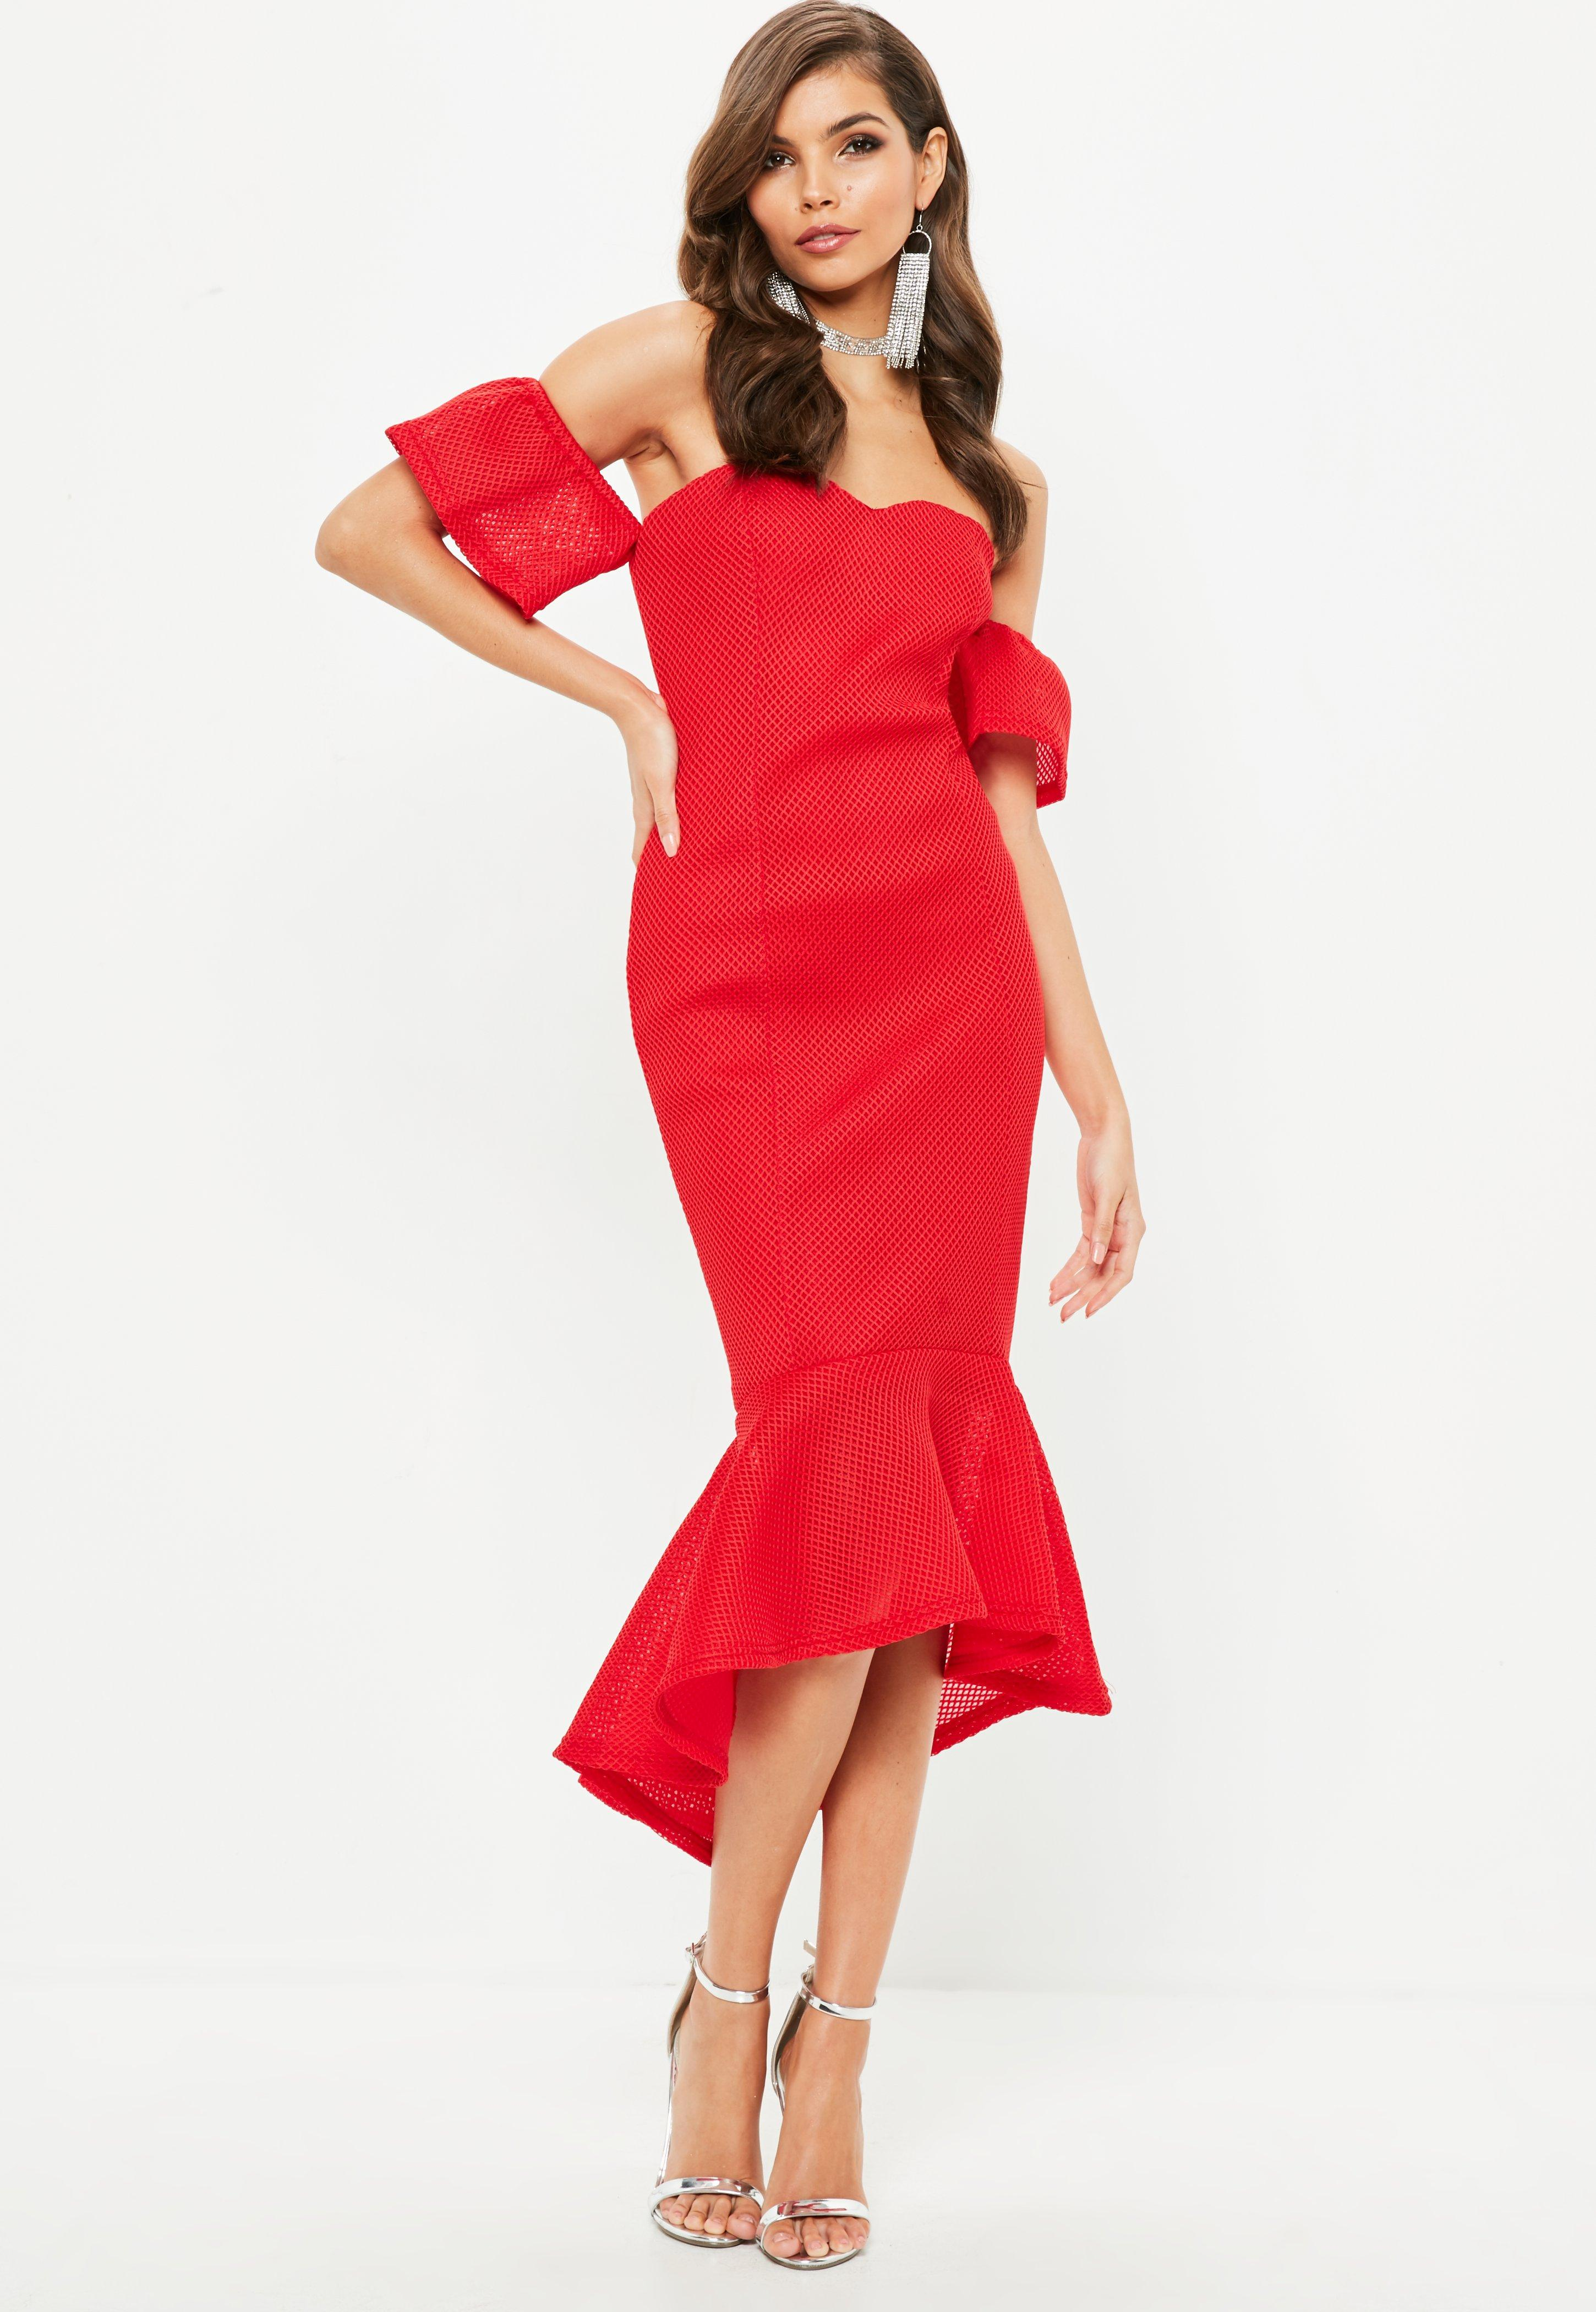 Red Cocktail Dresses for Women